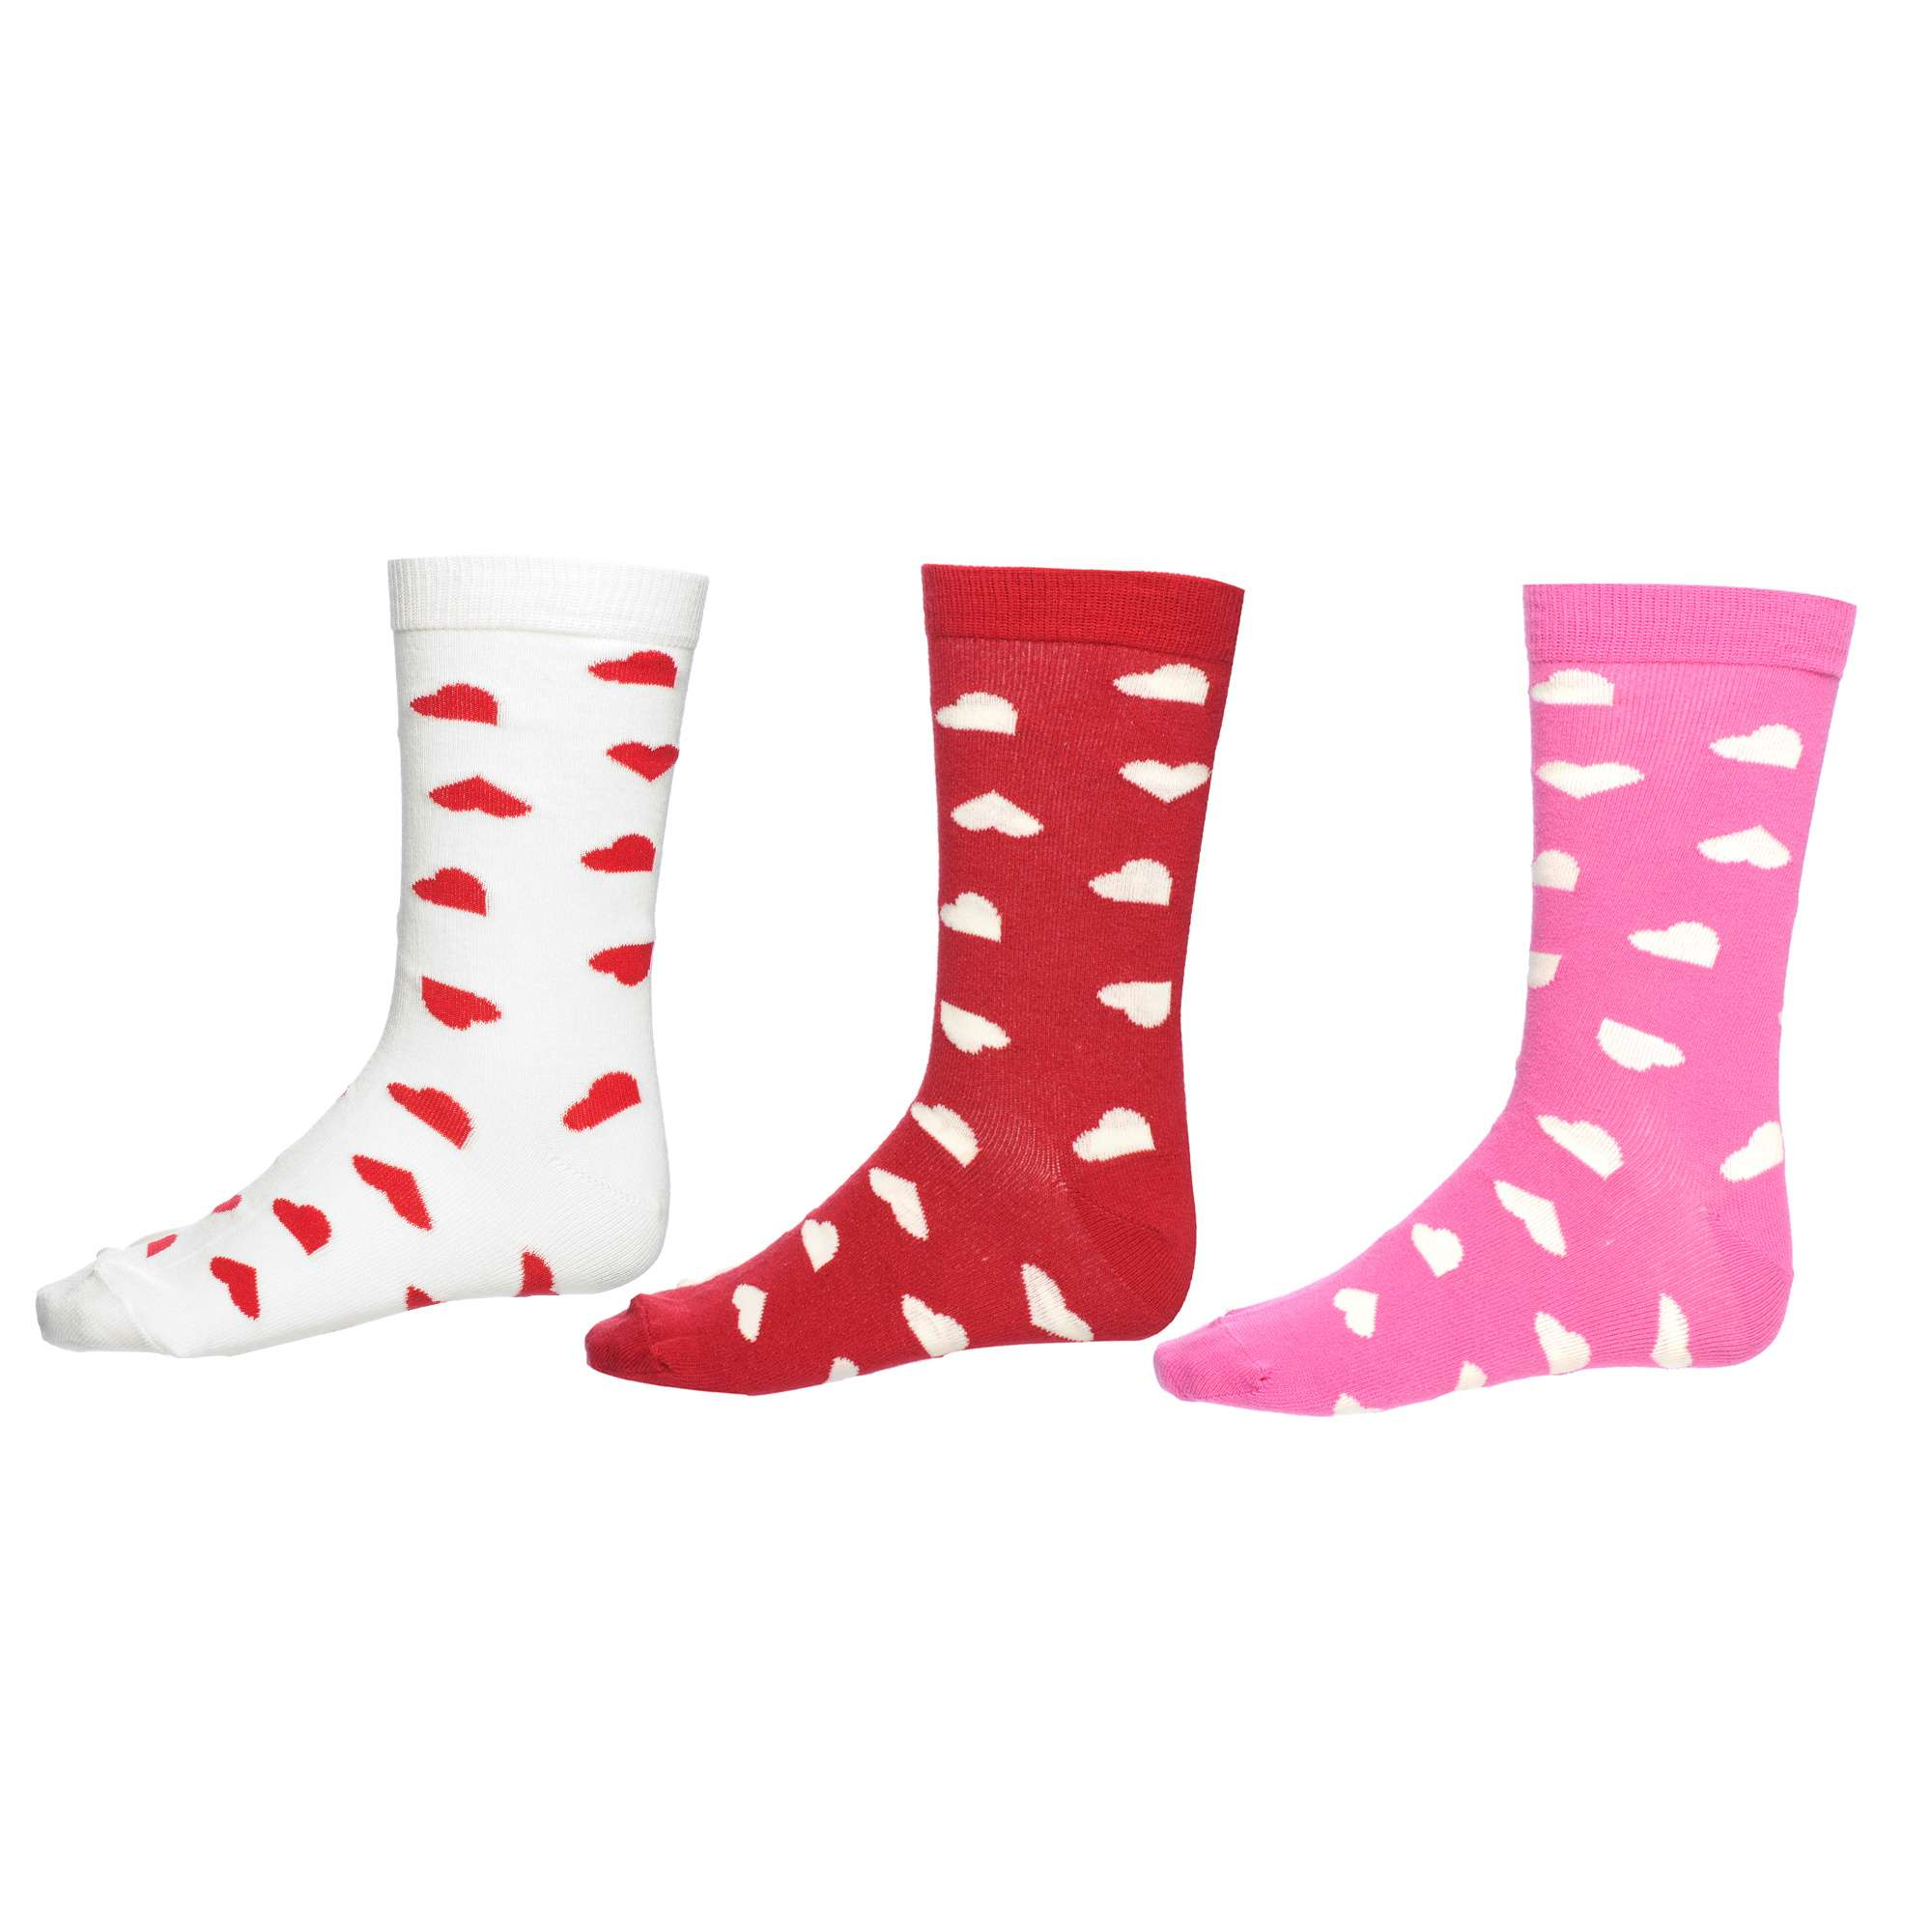 PETER STORM Girl's 3 Pack Socks